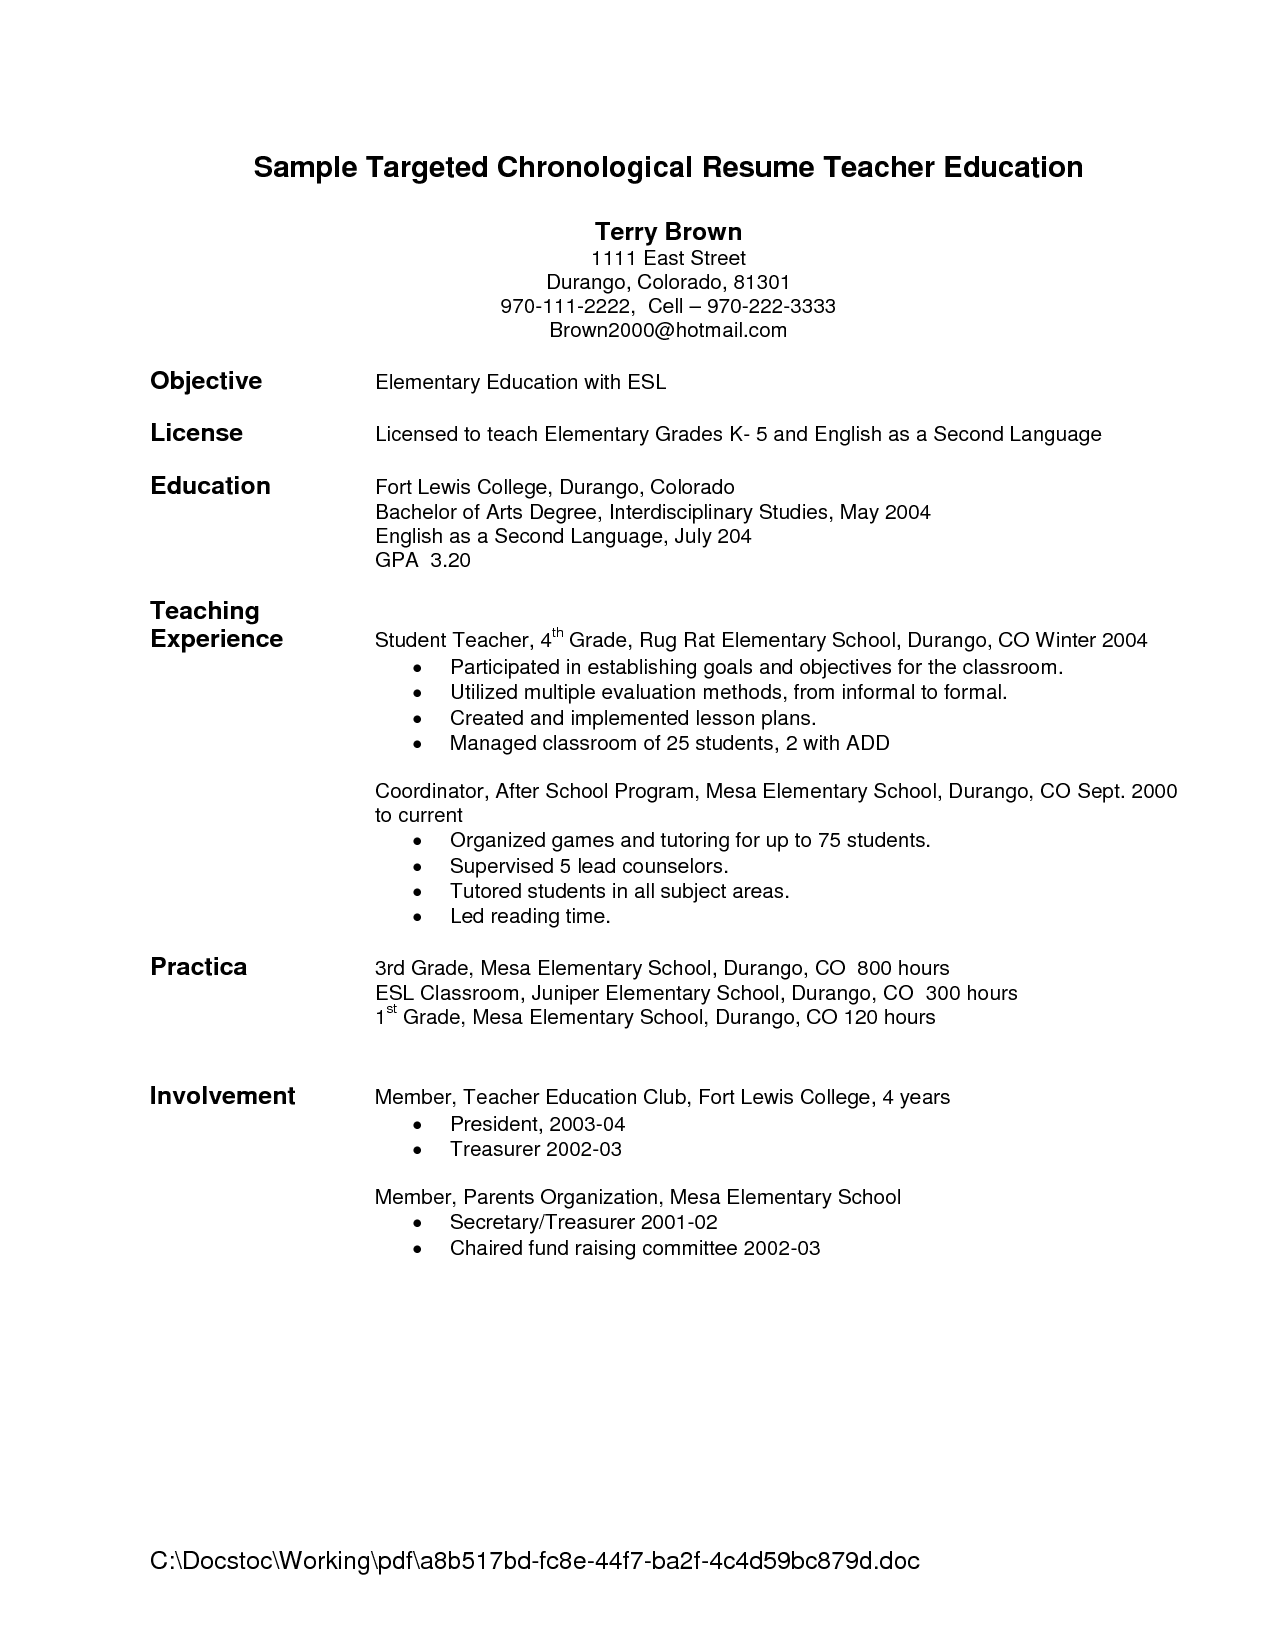 Resume Education Example Sample Targeted Chronological Resume Teacher Education